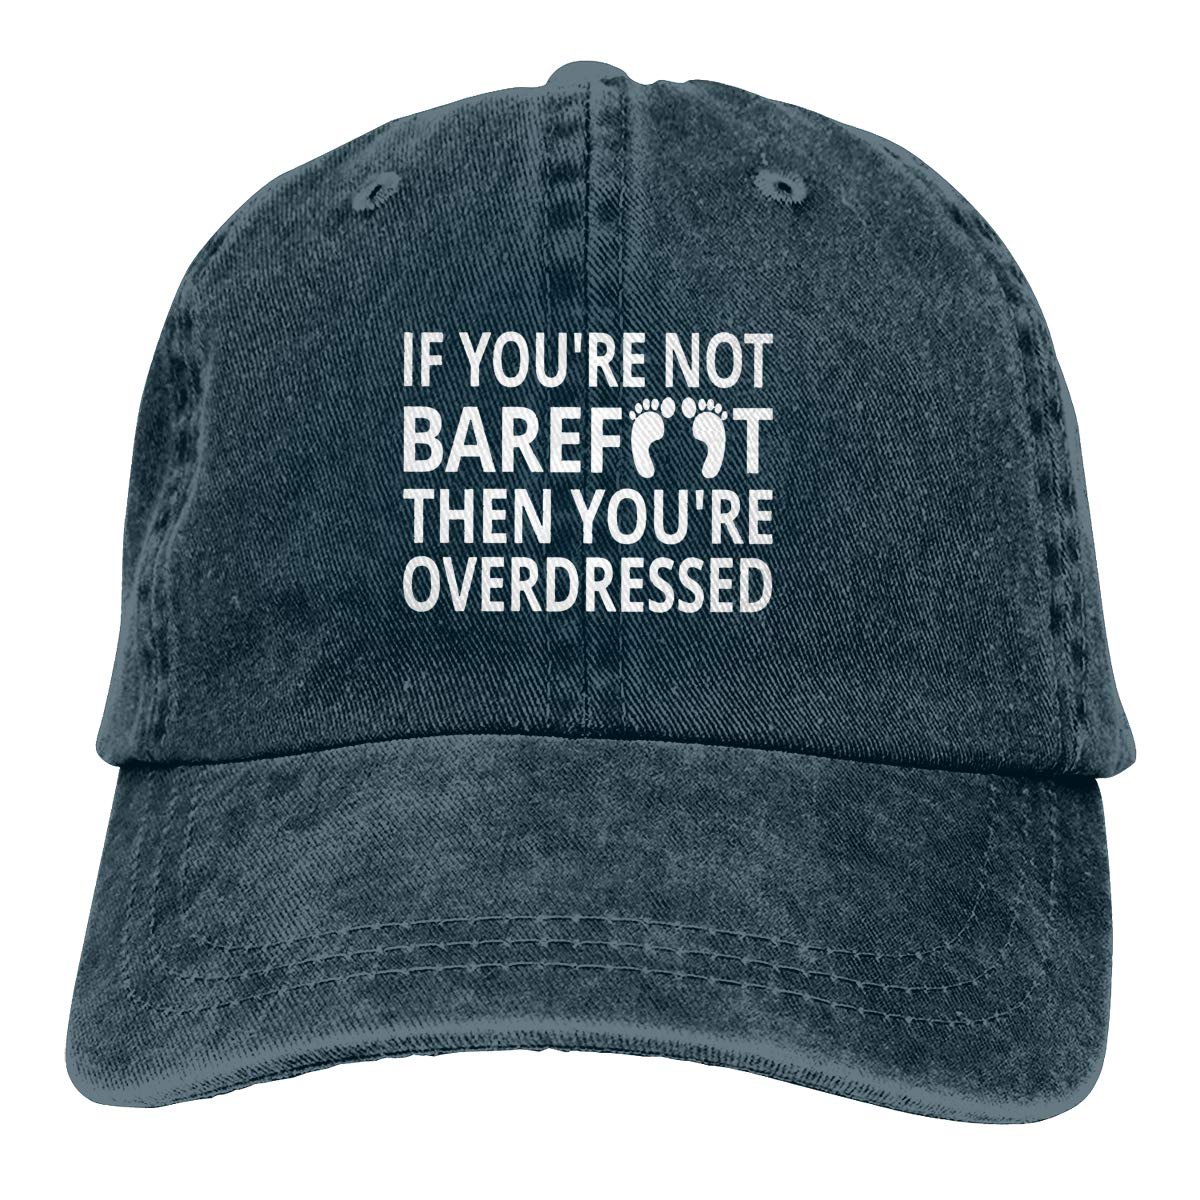 If Youre Not Barefoot You Fashion Adjustable Cowboy Cap Baseball Cap for Women and Men